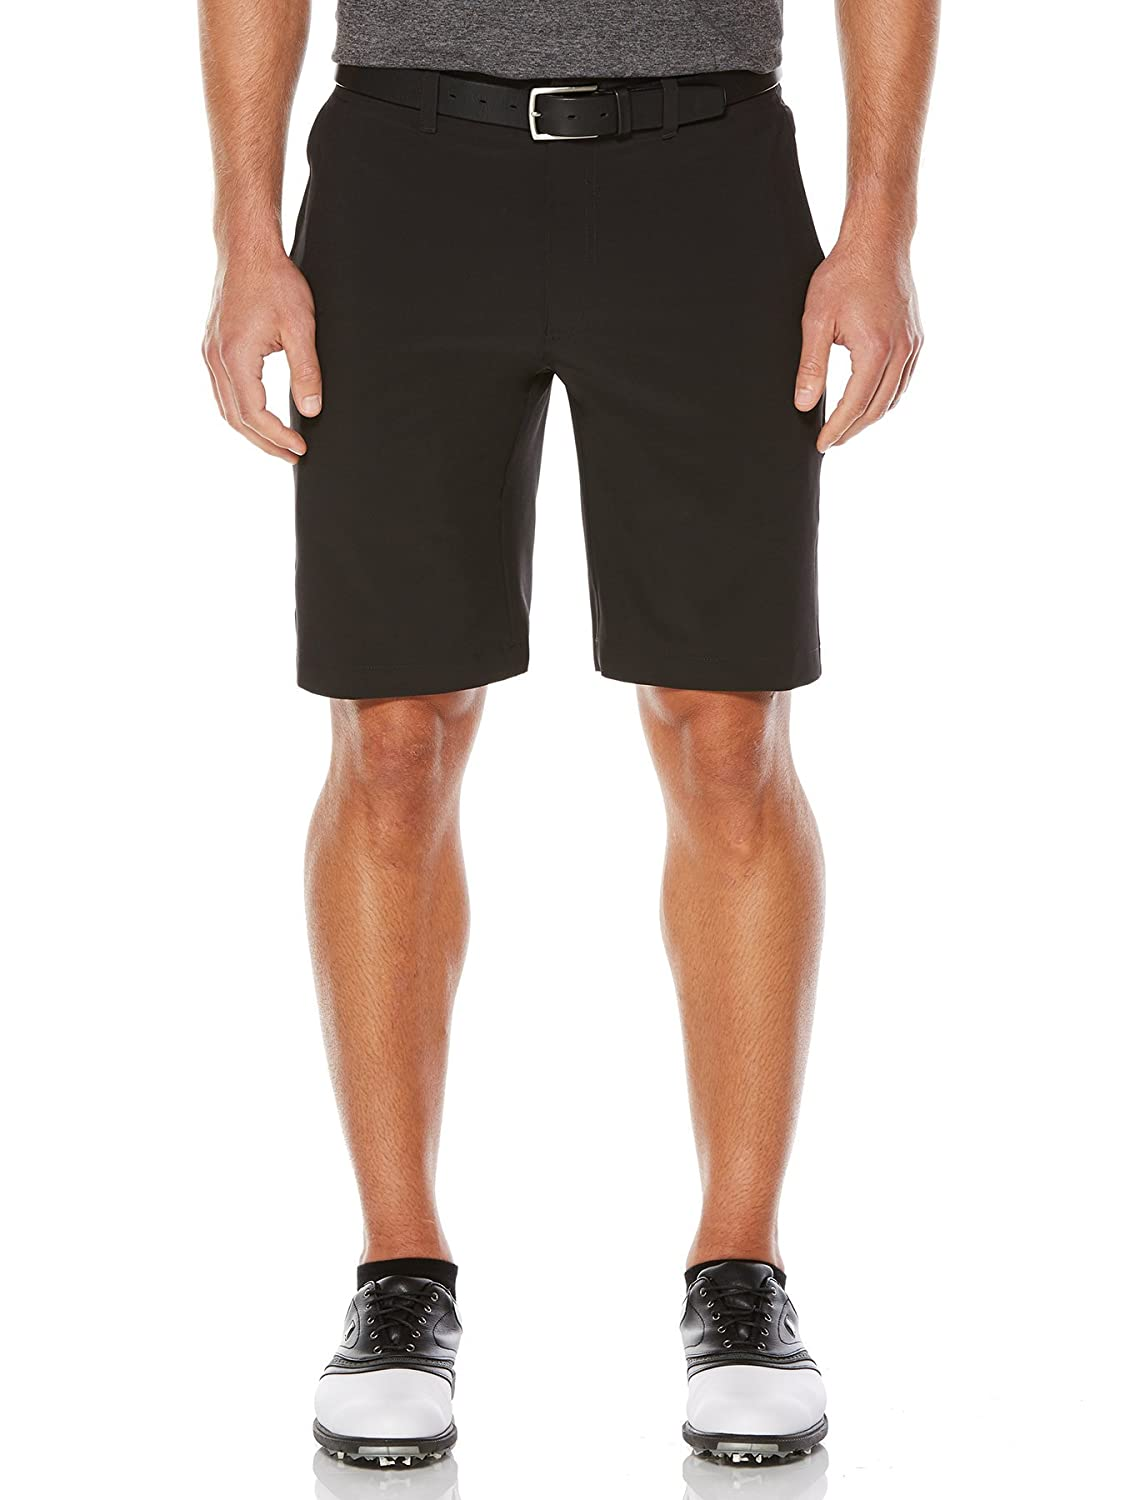 Callaway Herren Leicht Tech Shorts mit Aktiv Bund, herren, Lightweight Stretch Solid Short With Active Waistband, Caviar, 44